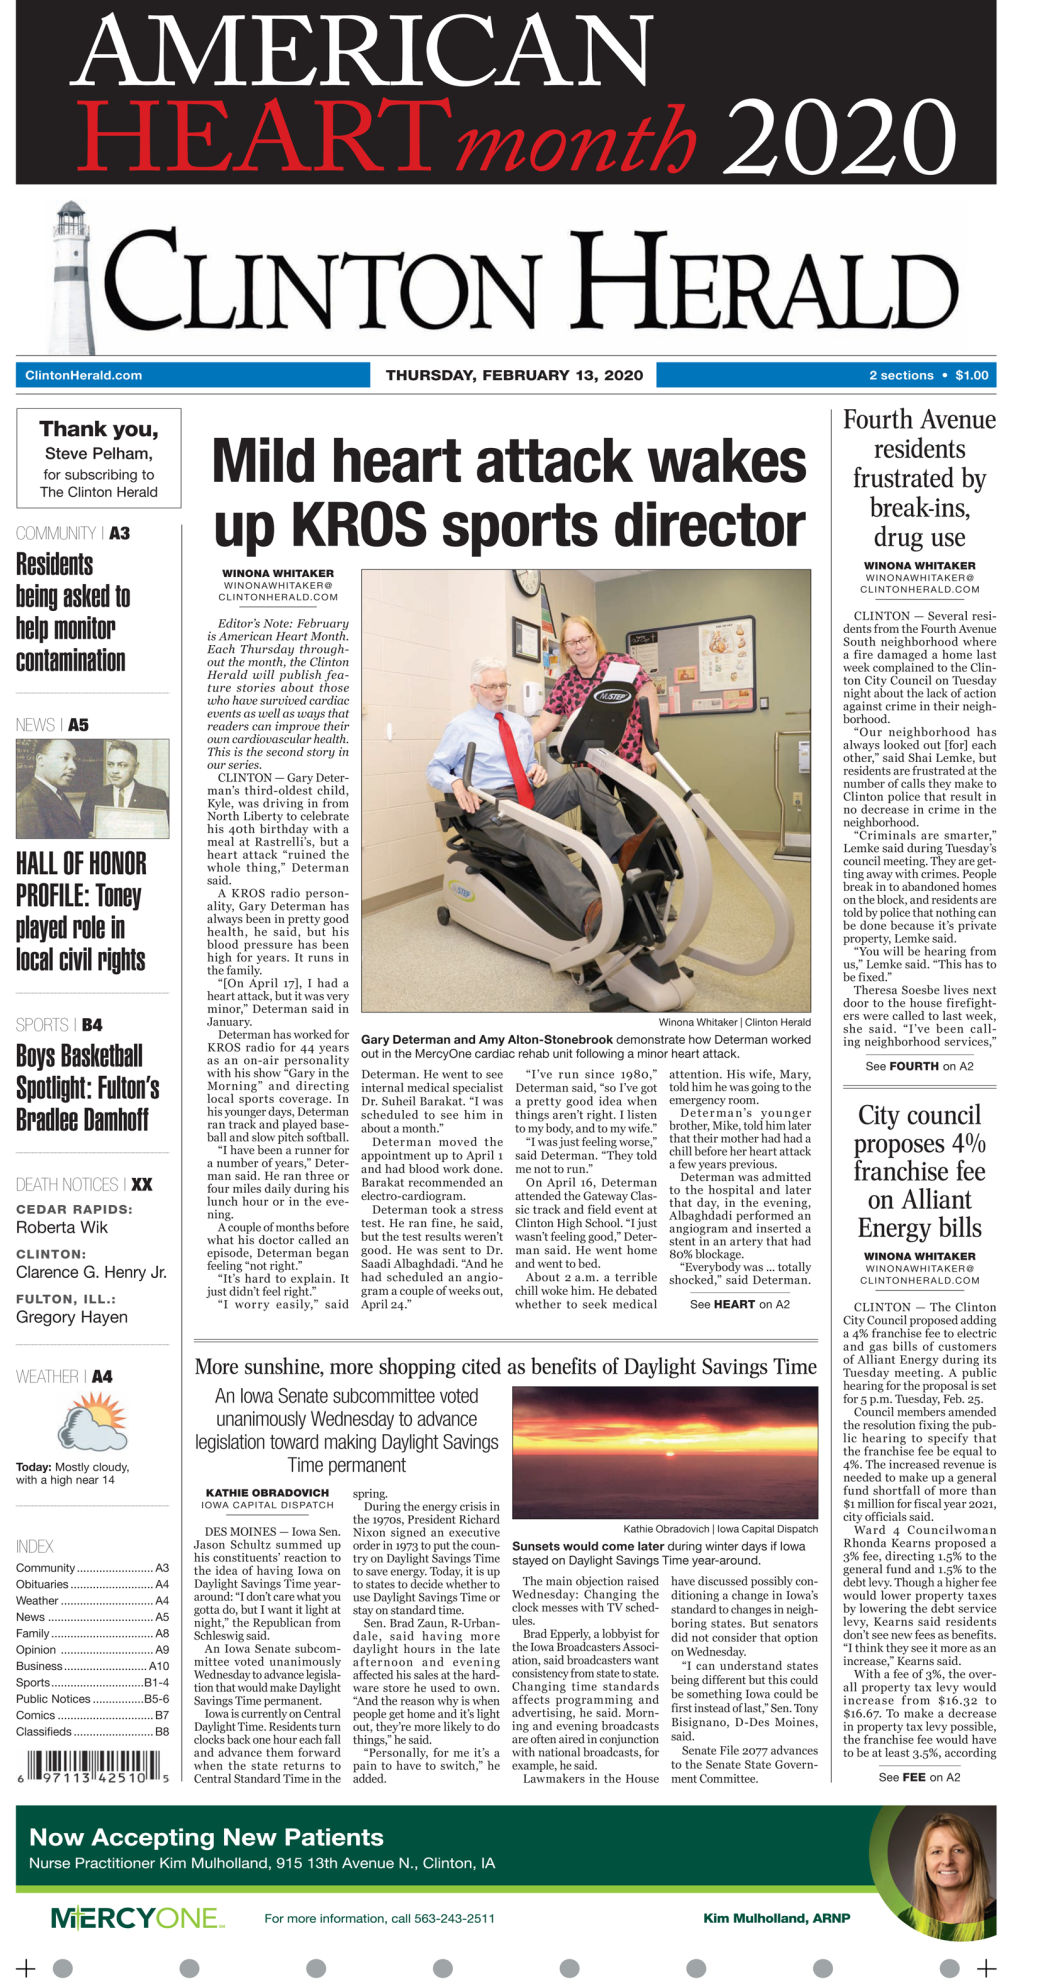 Feb. 13, 2020 Front page